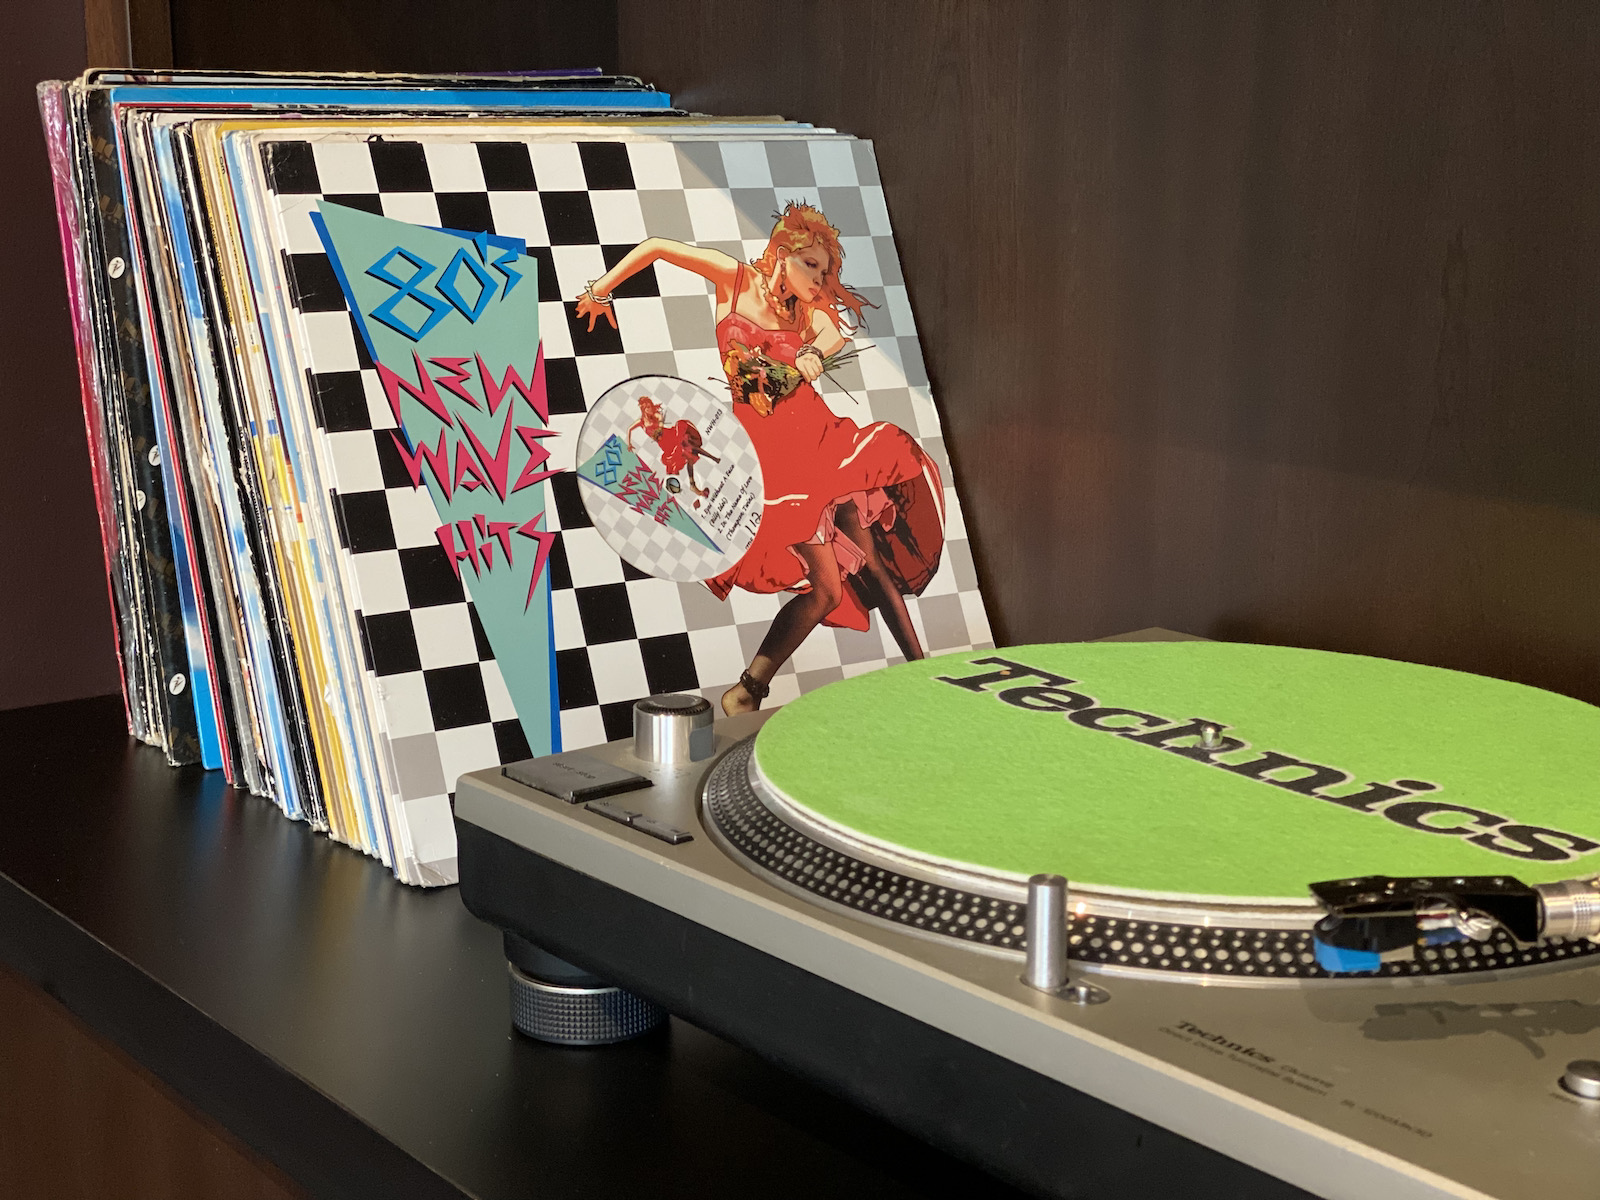 Turntable and records